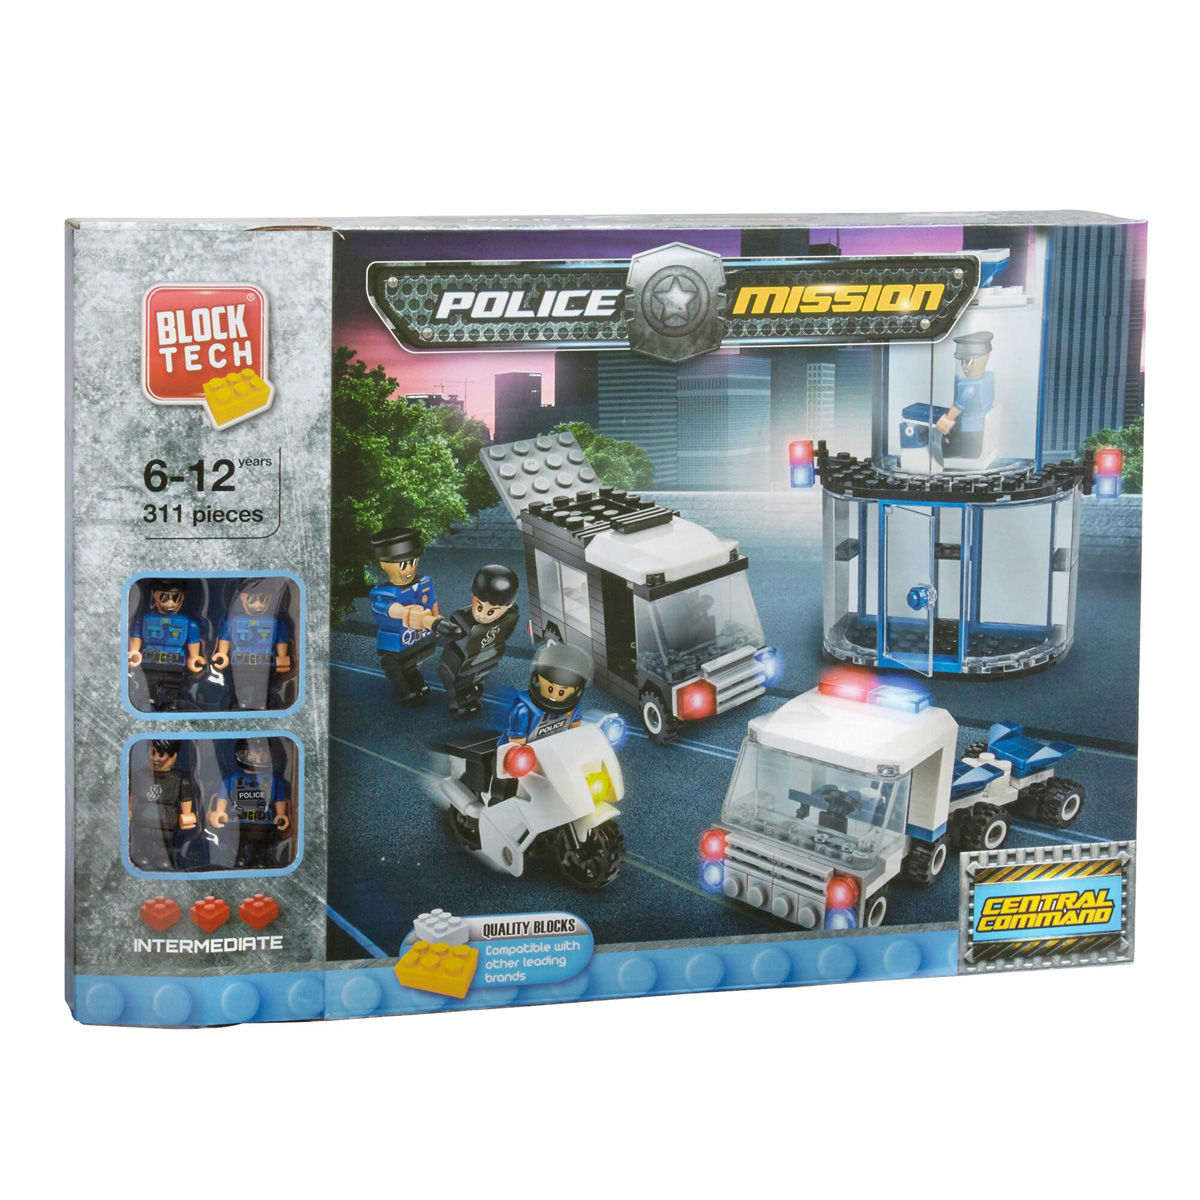 Block Tech Police Mission Central Command Playset